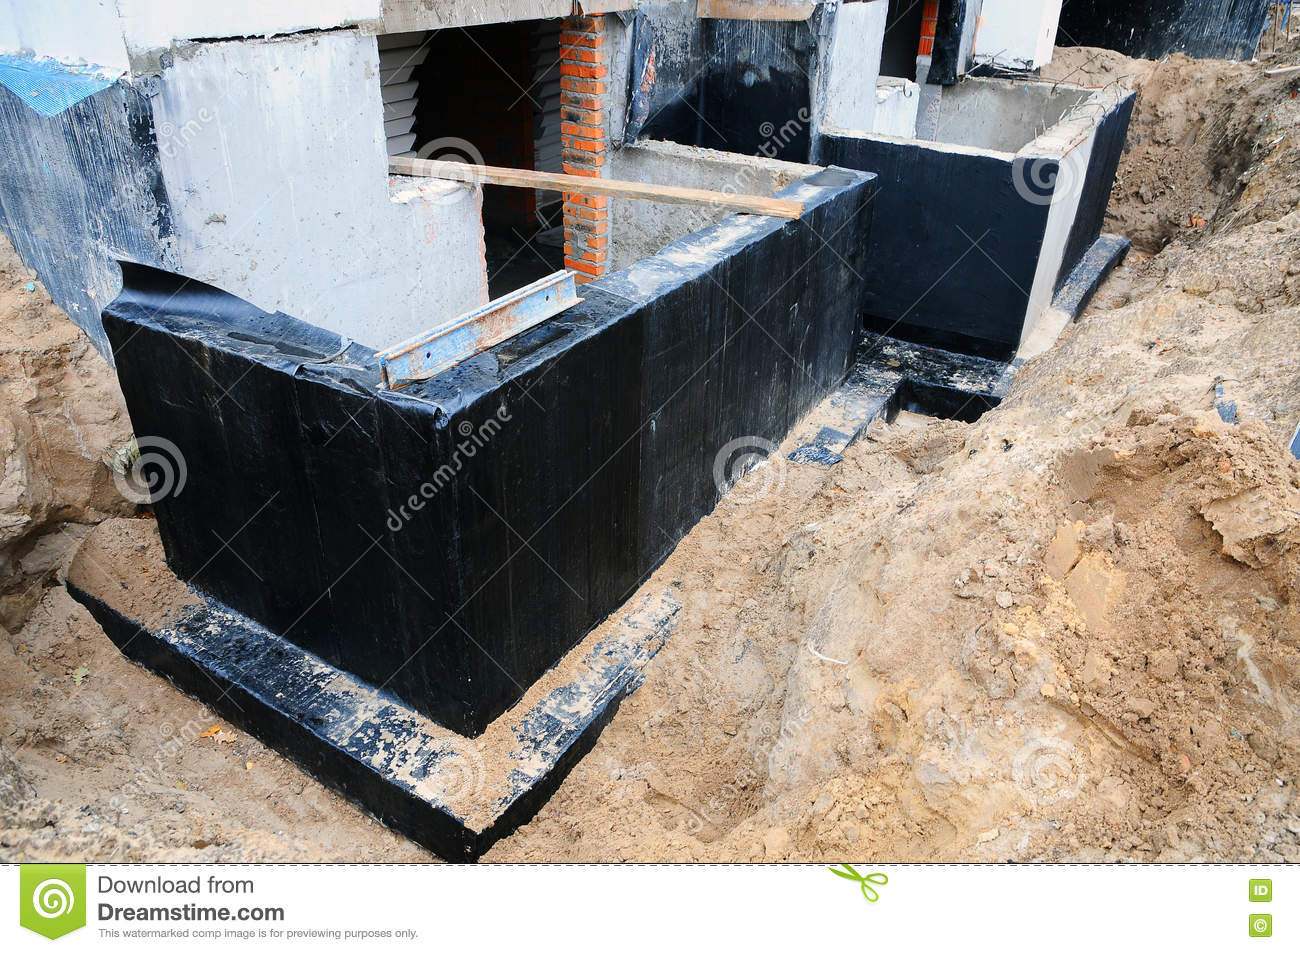 dampness waterproofing It is designed to allow both the roof and the chimney to expand and contract at their own rates without breaking the waterproof vapors and moisture inside.